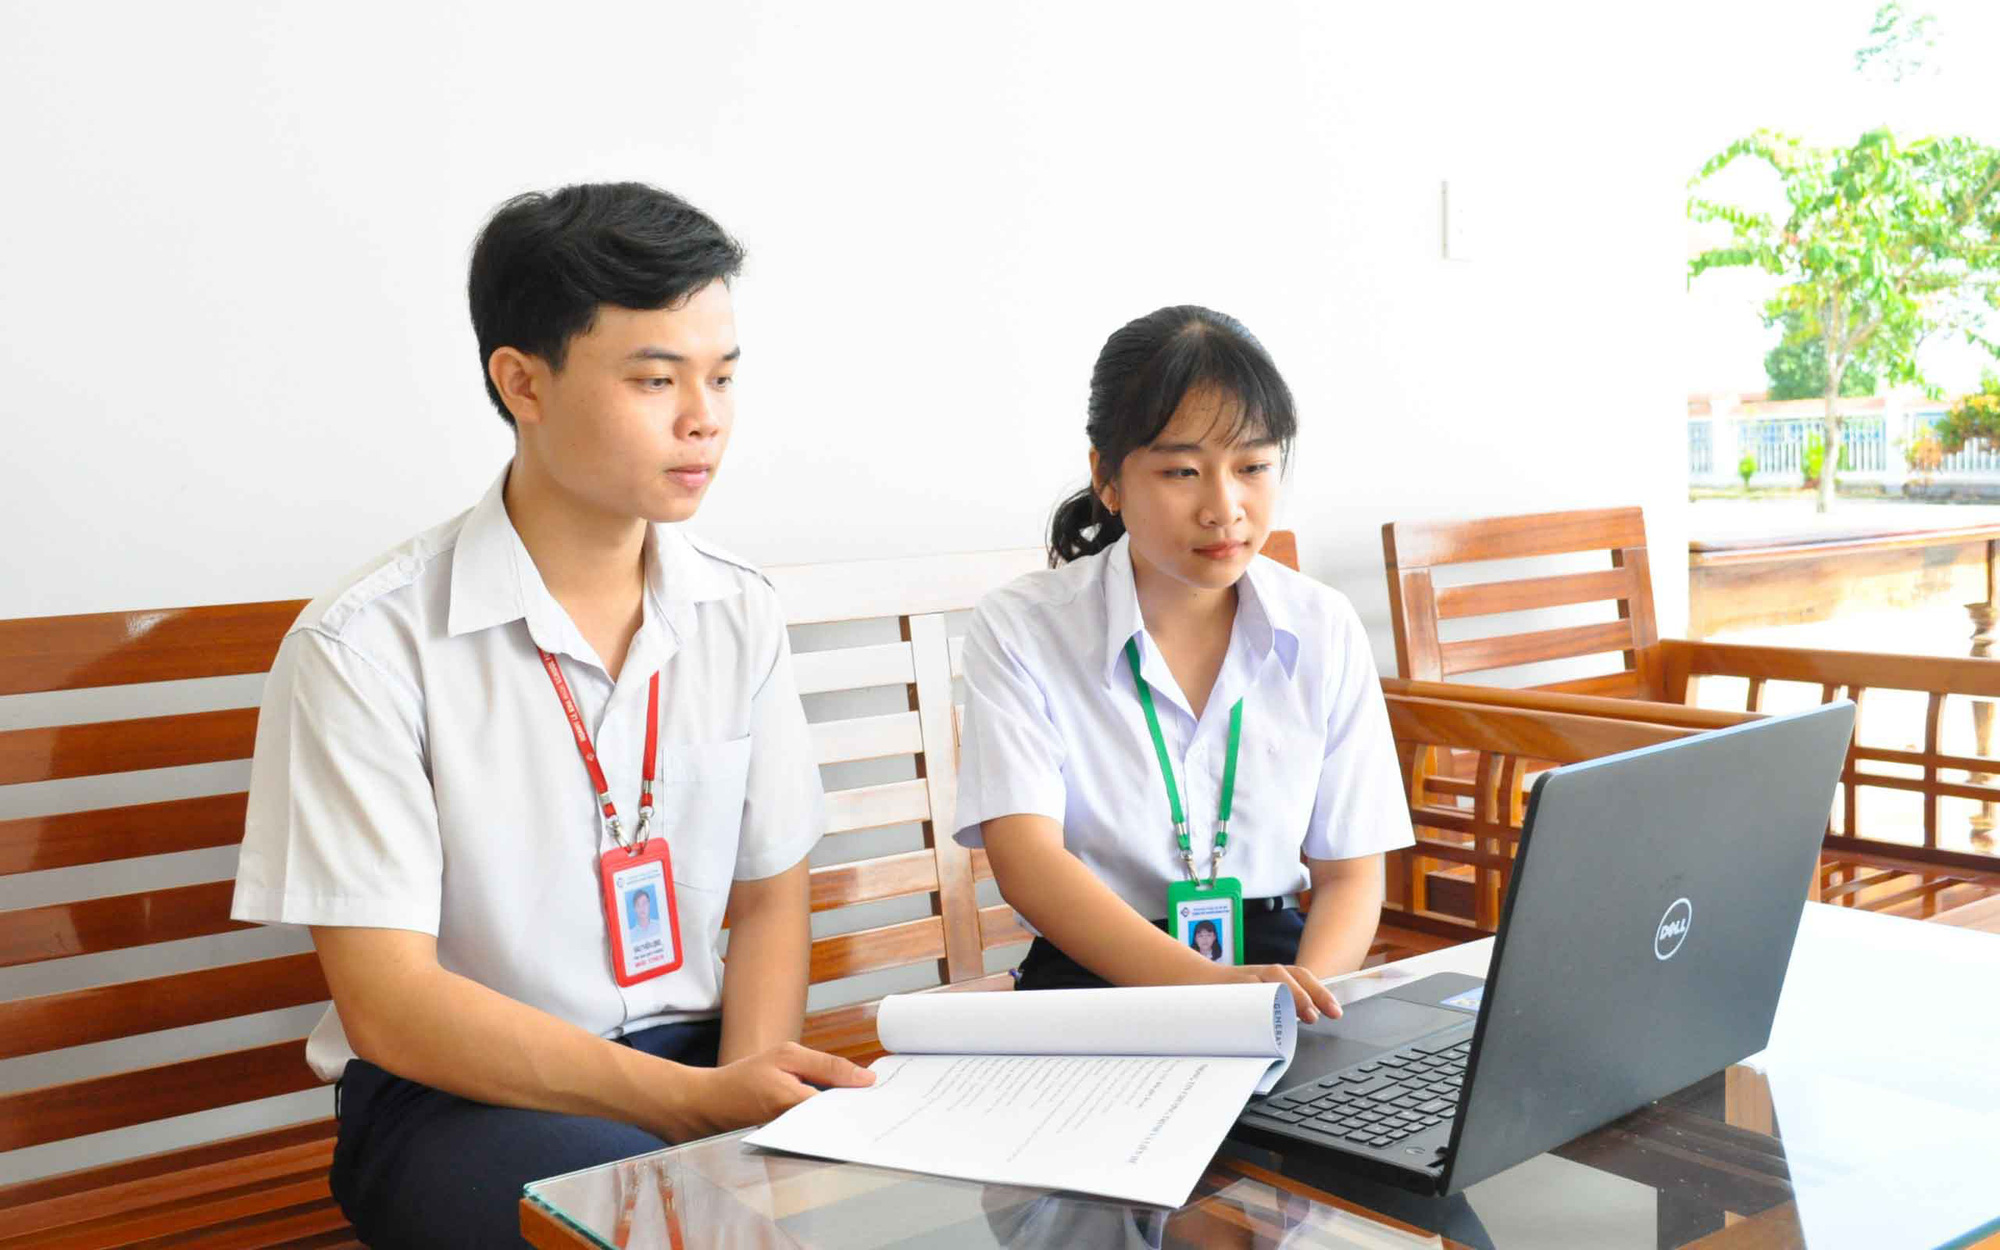 Vietnamese teens train computer system to spot littering behavior